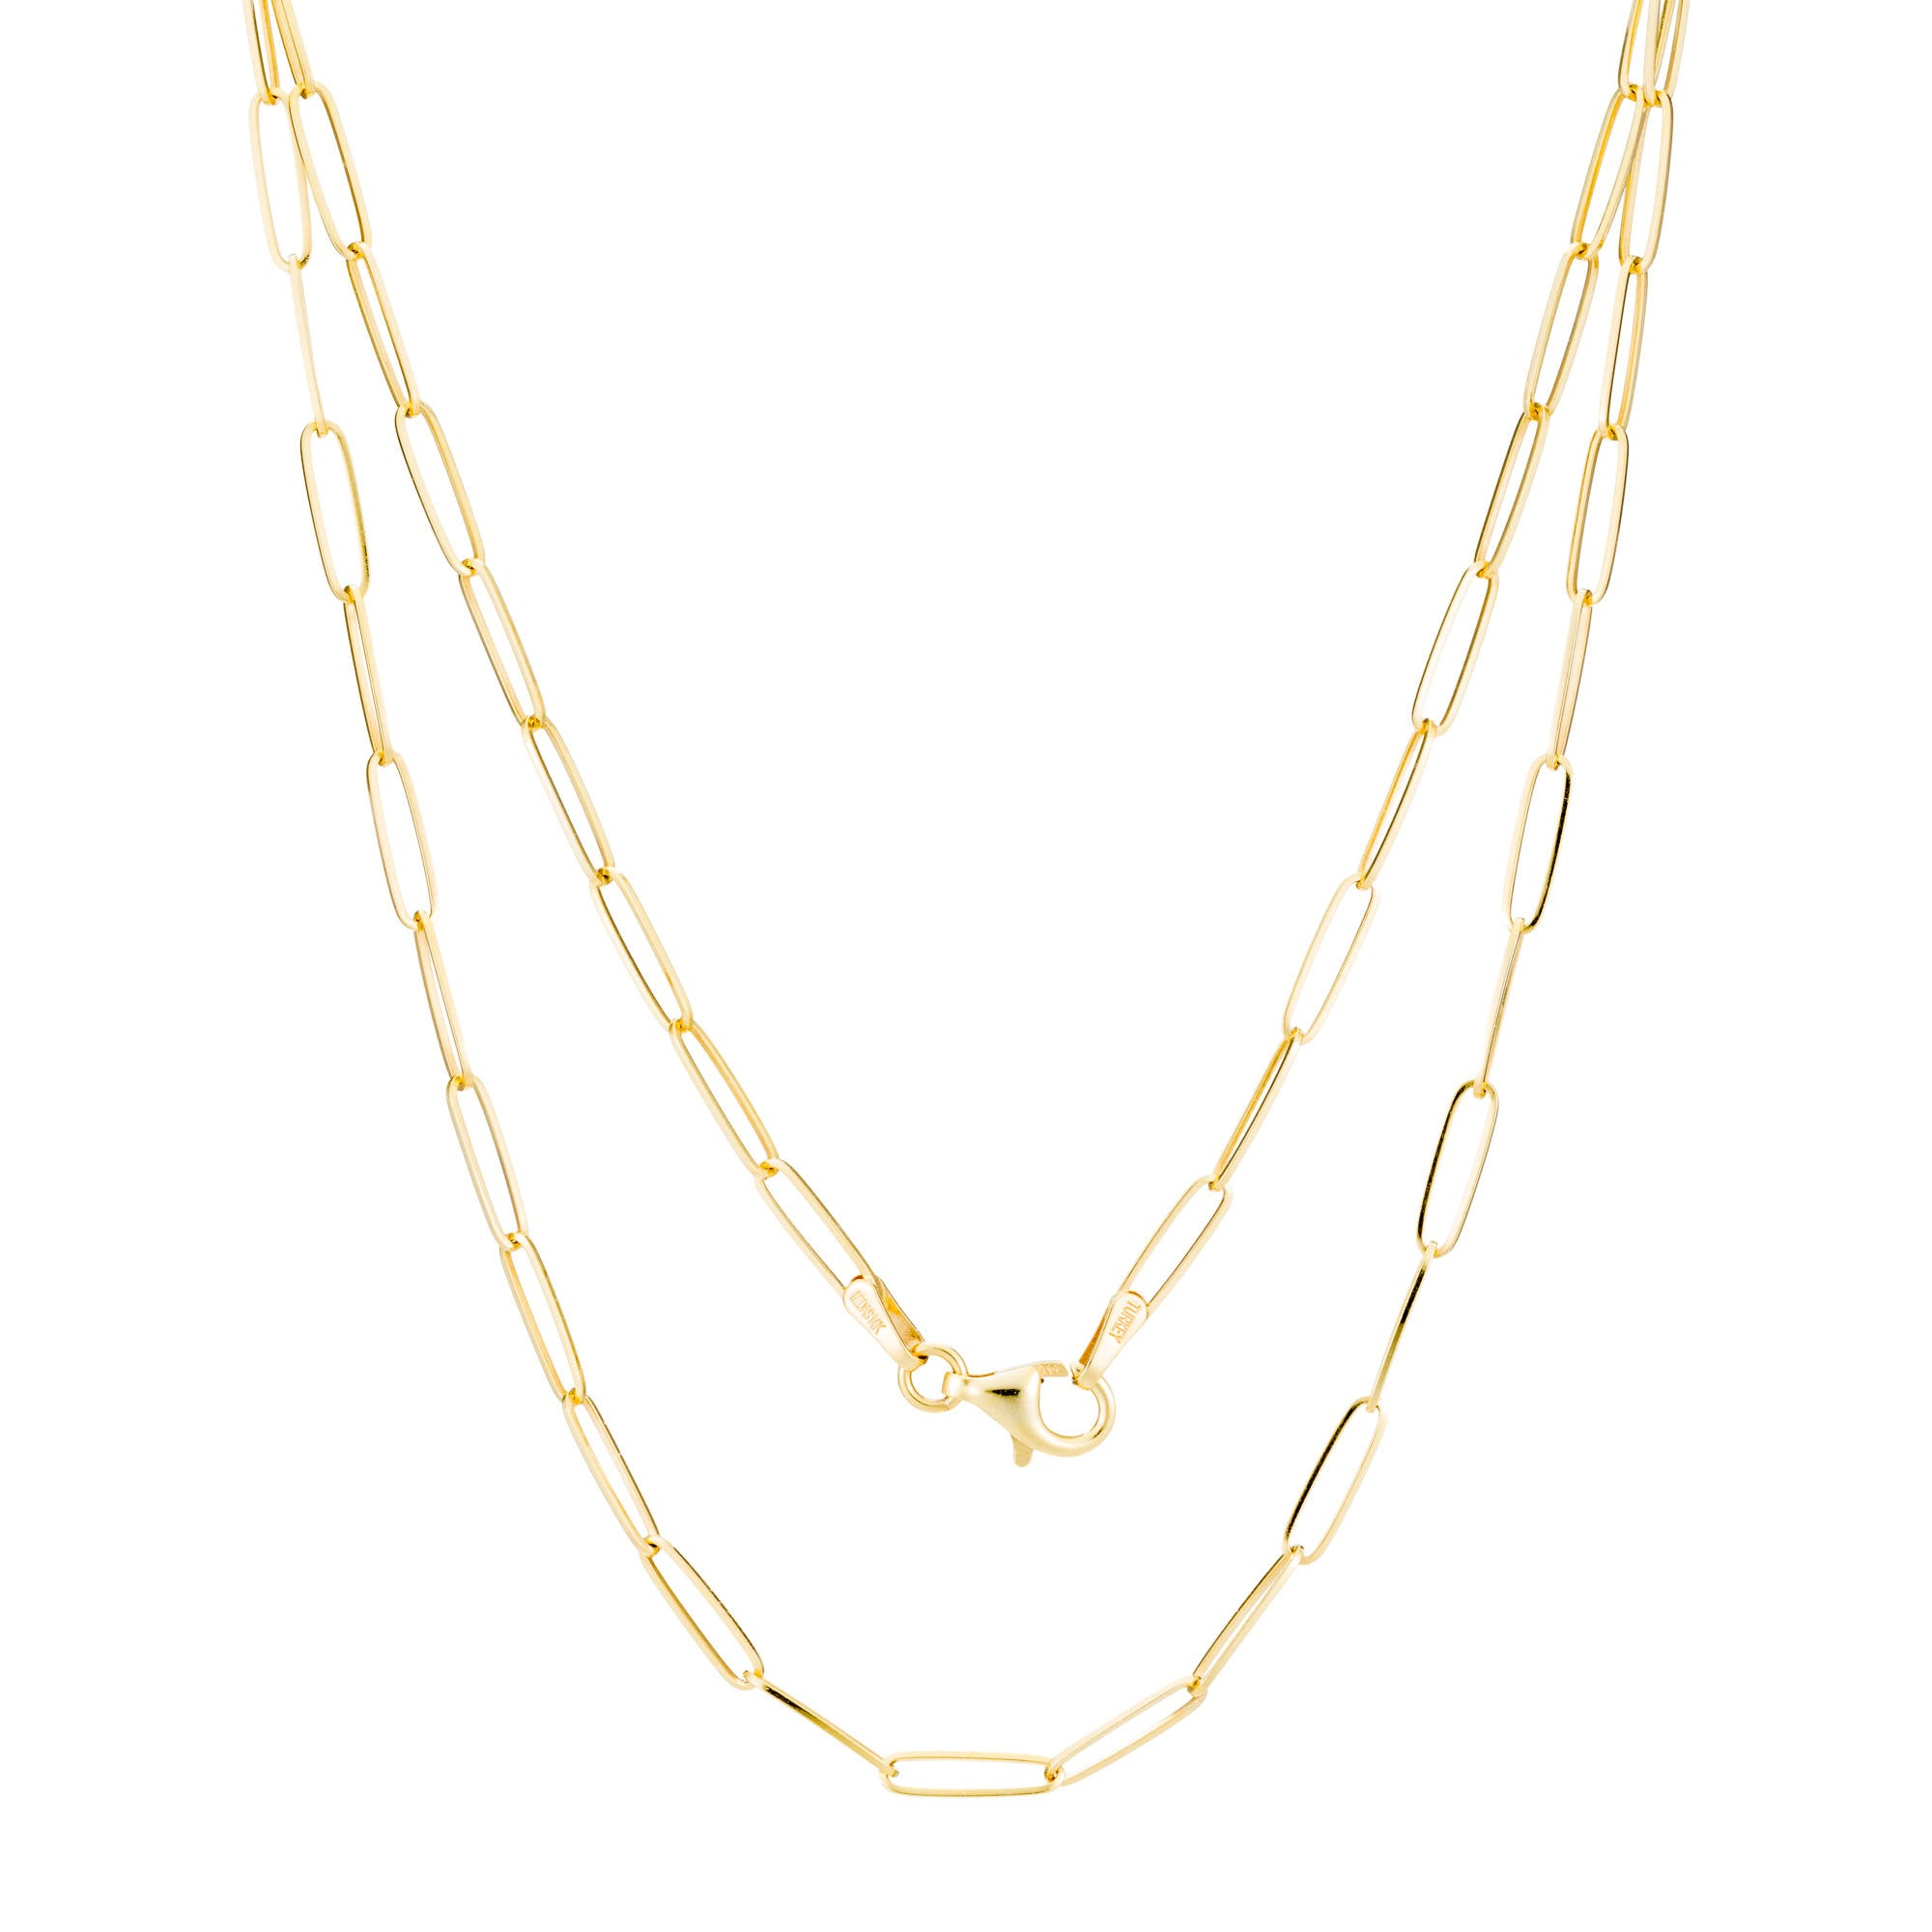 Product shot of 14K Gold Flat Chain Necklace showing the clasp in yellow gold